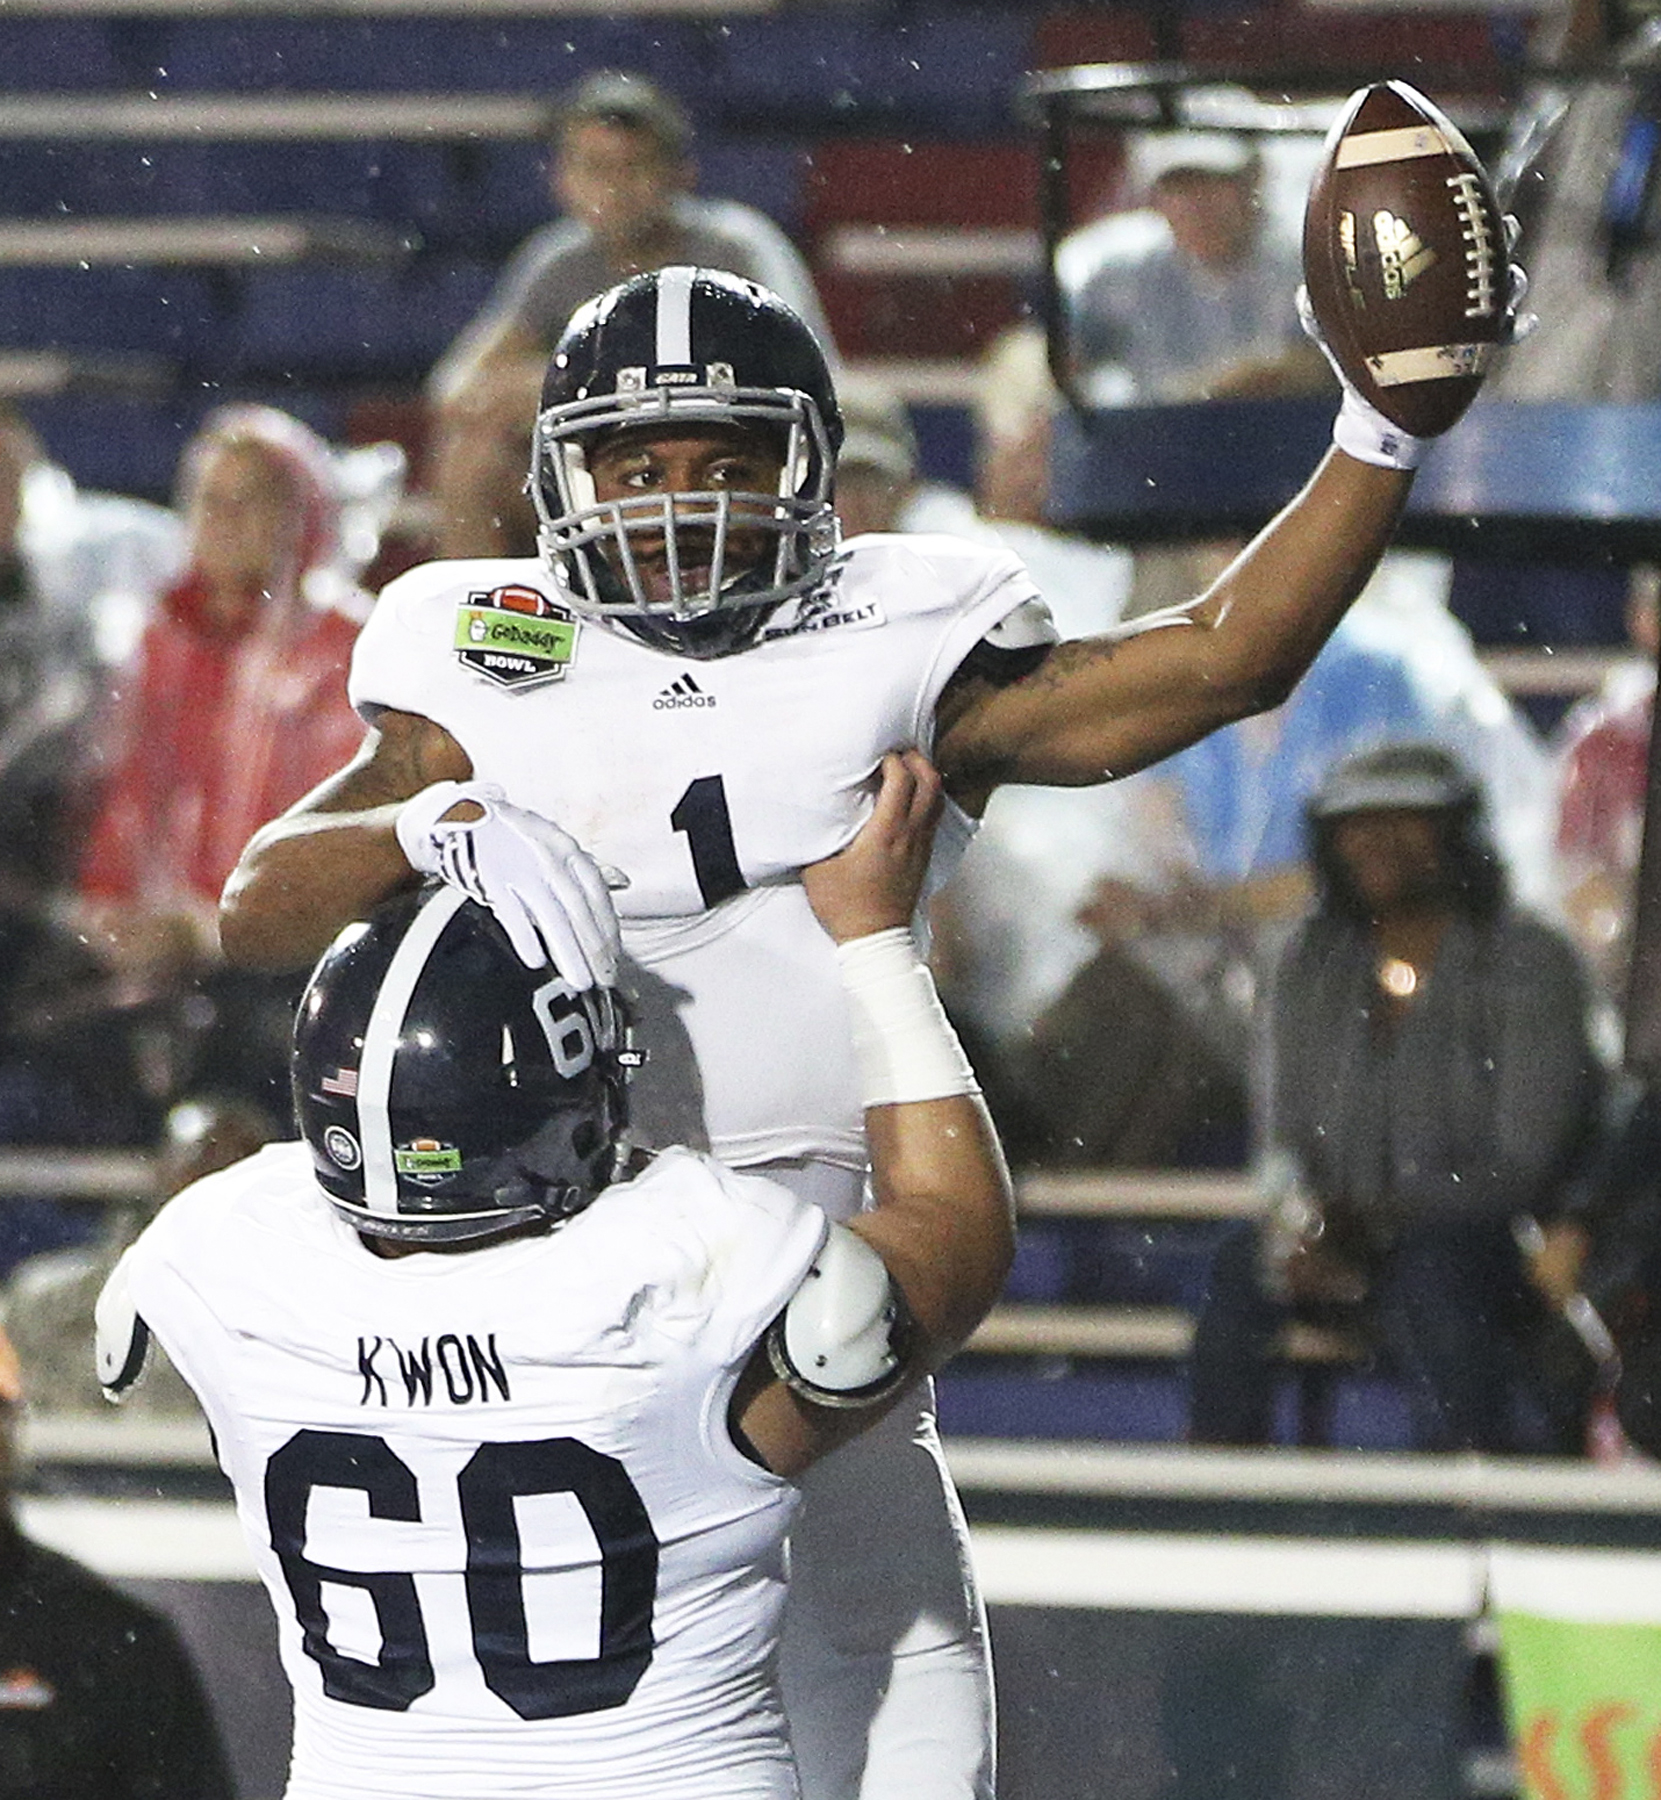 Georgia Southern offensive lineman Andy Kwon (60) celebrates with running back L.A. Ramsby (1) after Ramsby's touchdown against Bowling Green during the first half of the GoDaddy Bowl NCAA college football game Wednesday, Dec. 23, 2015, in Mobile, Ala. (M